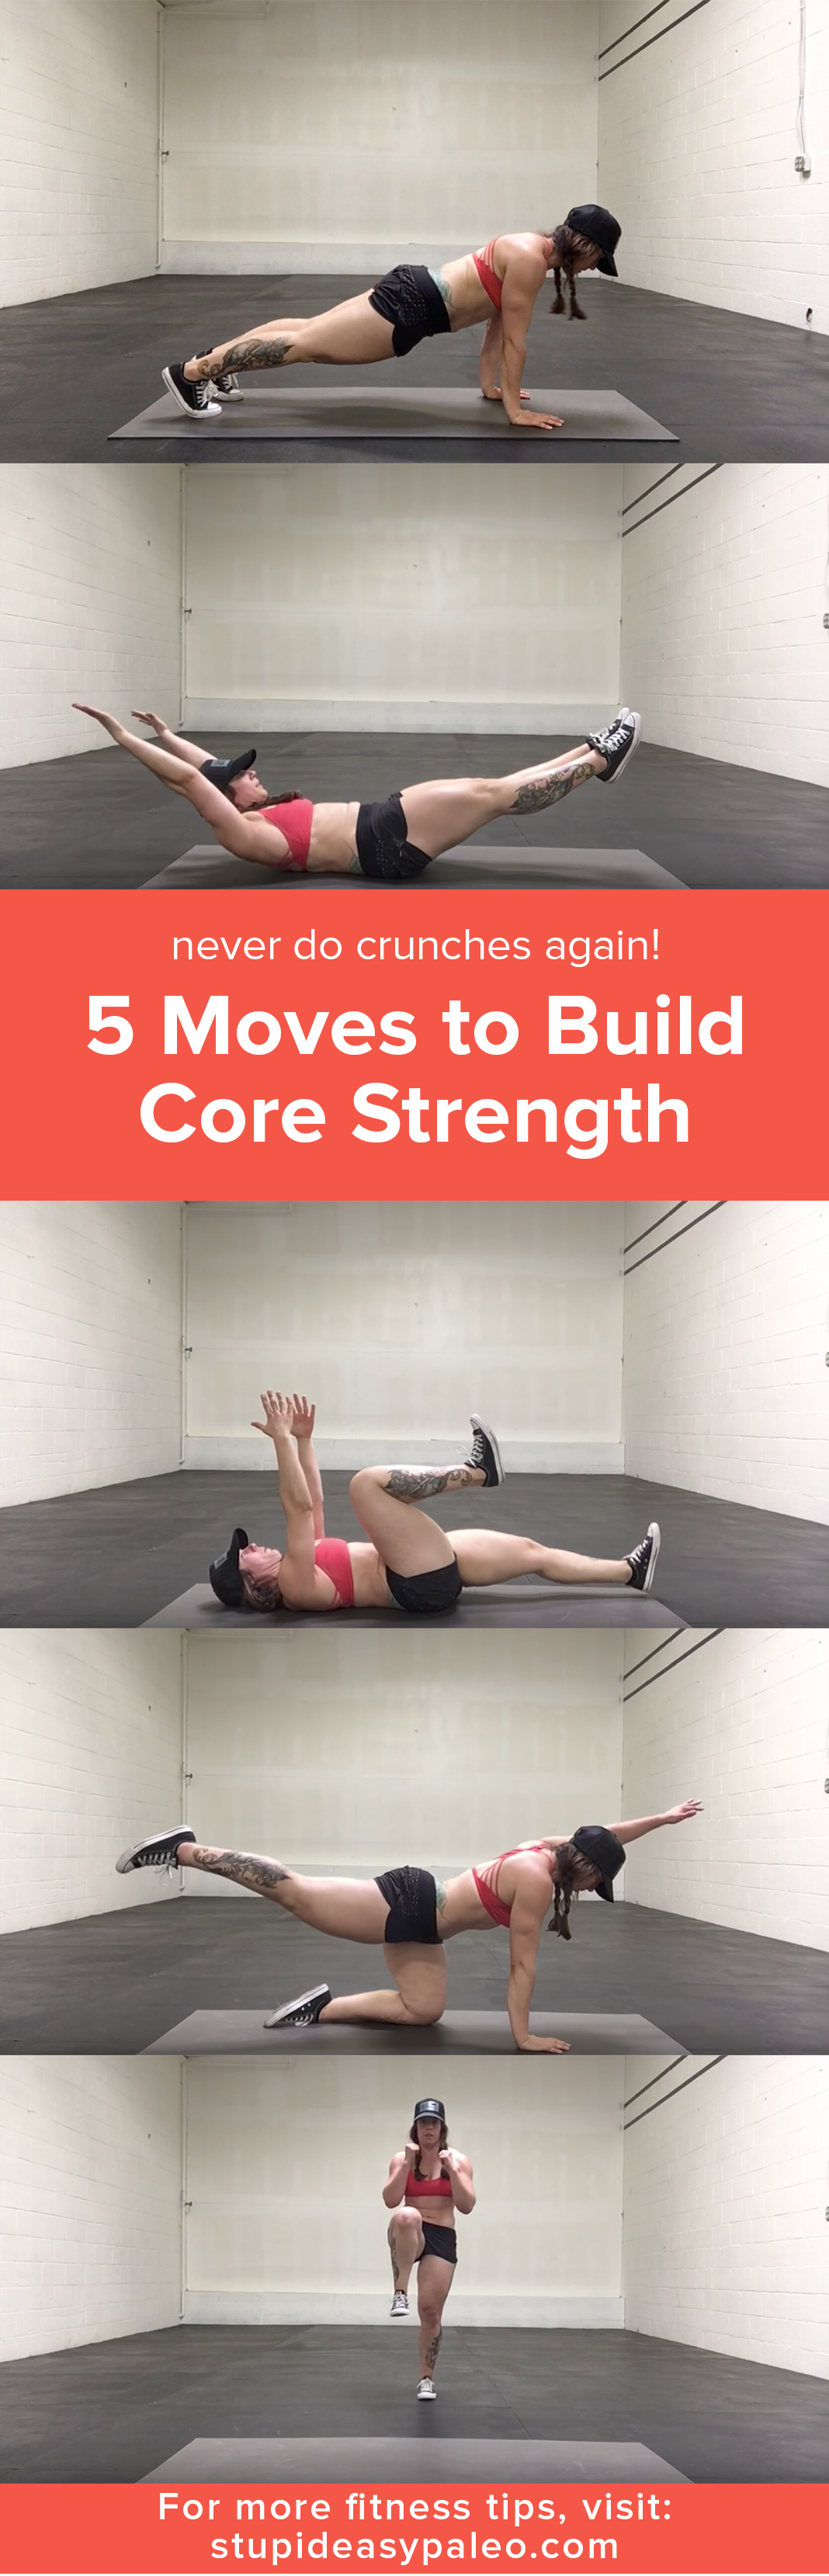 These 5 moves build core strength fast without painful crunches or sit-ups...best part is you can do these at home in just minutes a day! | StupidEasyPaleo.com